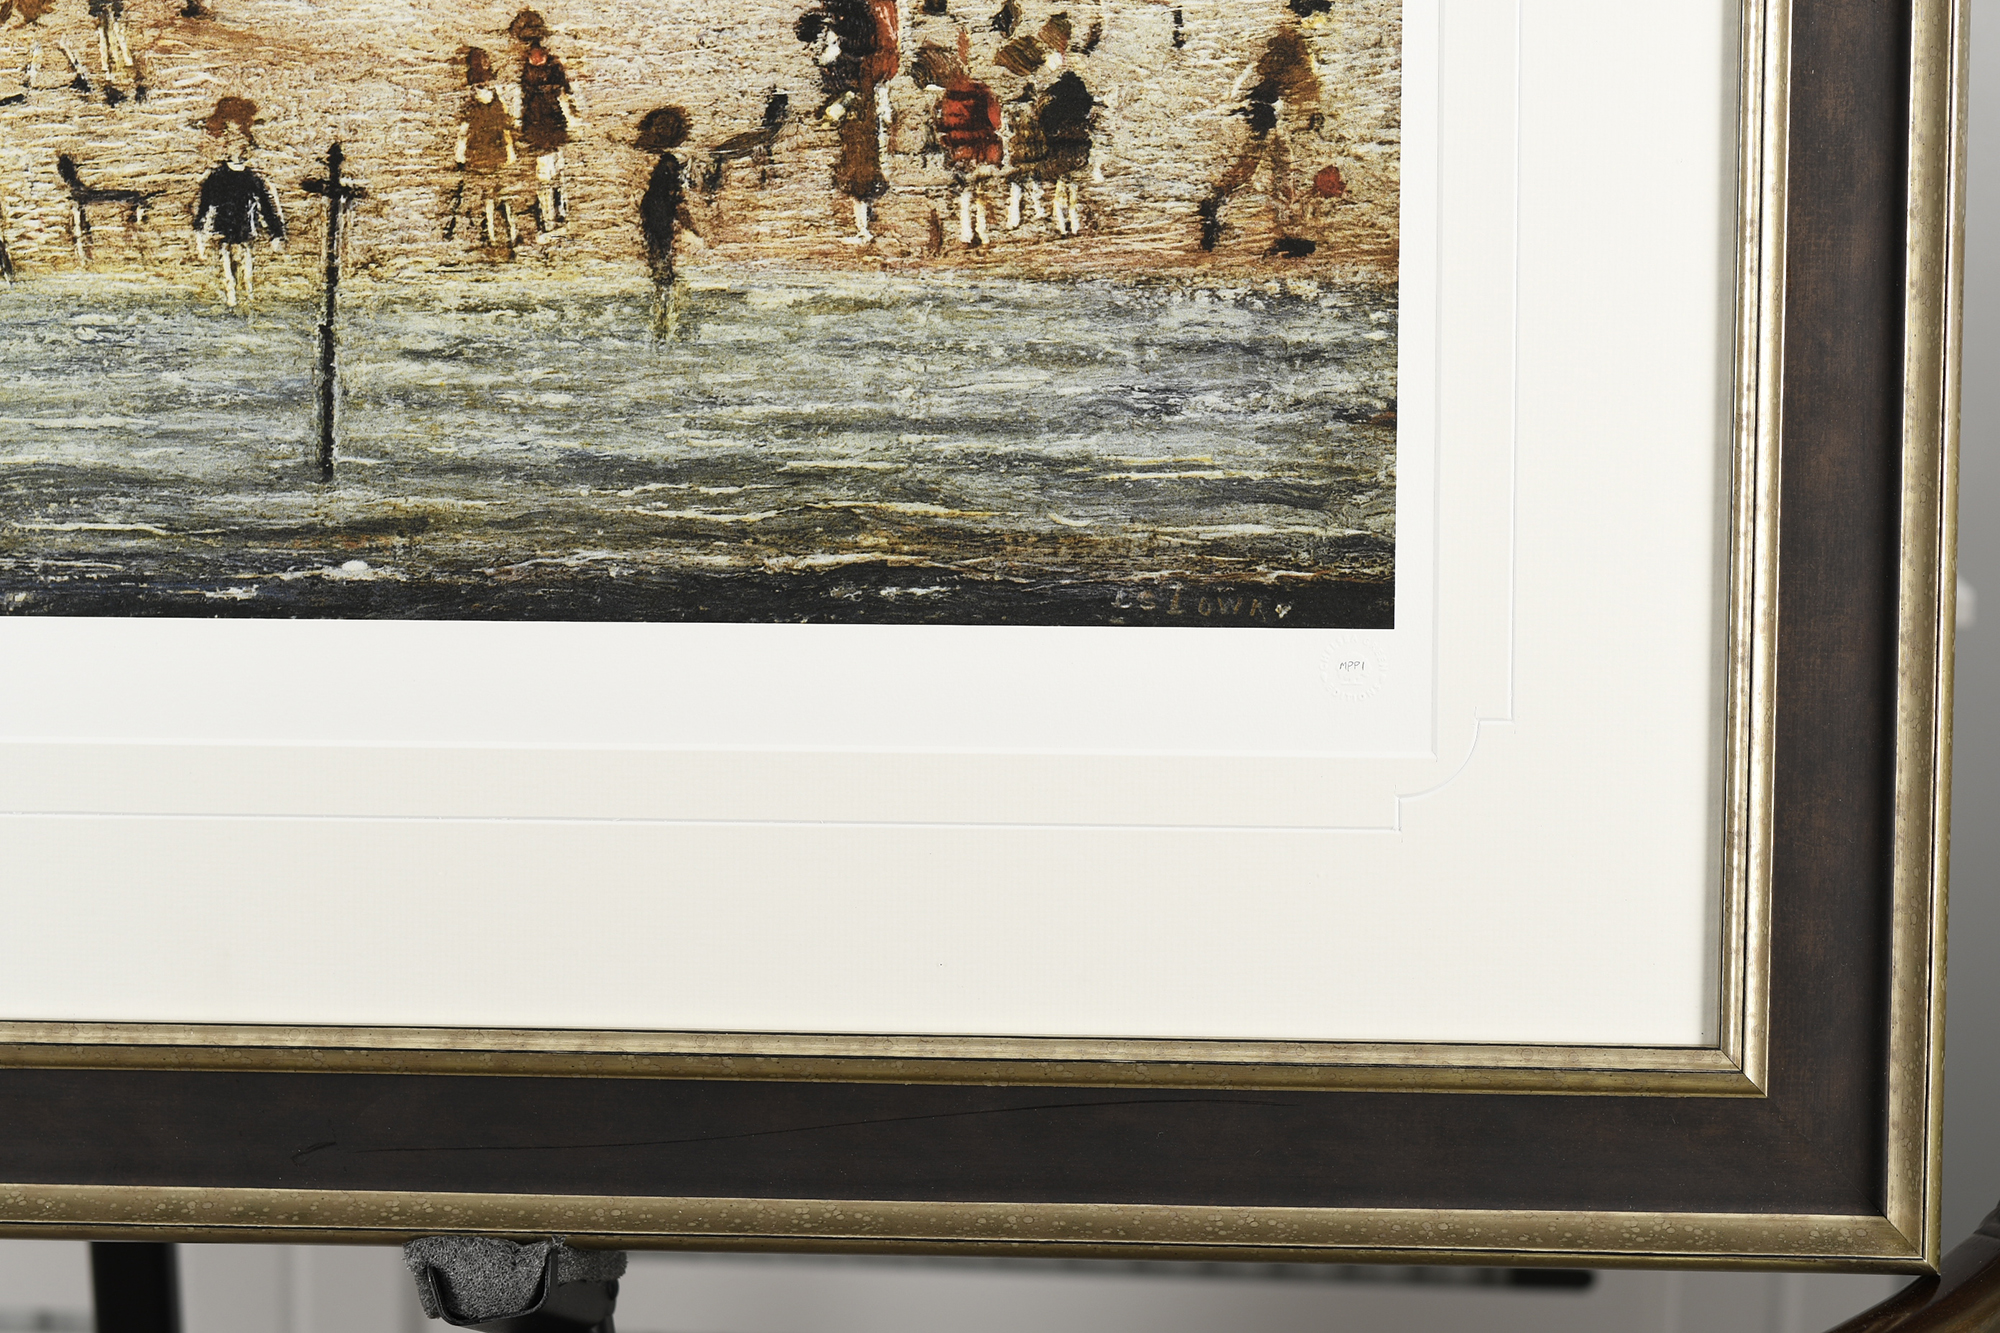 """Limited Edition L.S. Lowry """"The Beach"""" - Image 5 of 9"""